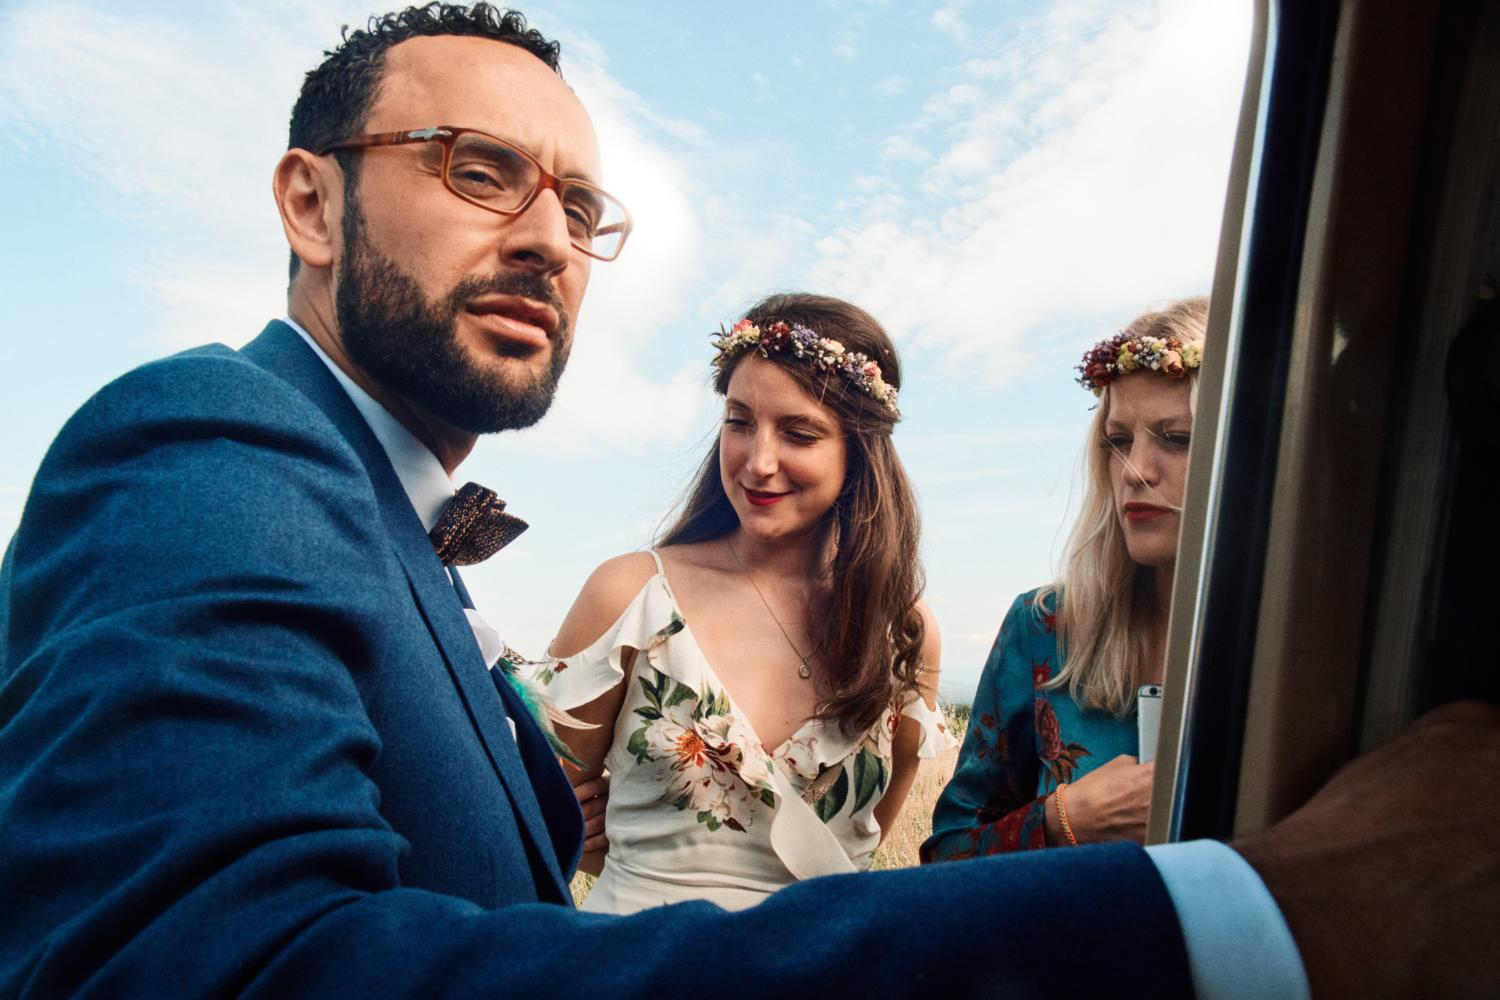 A groom wearing glasses exits van with two bridesmaids